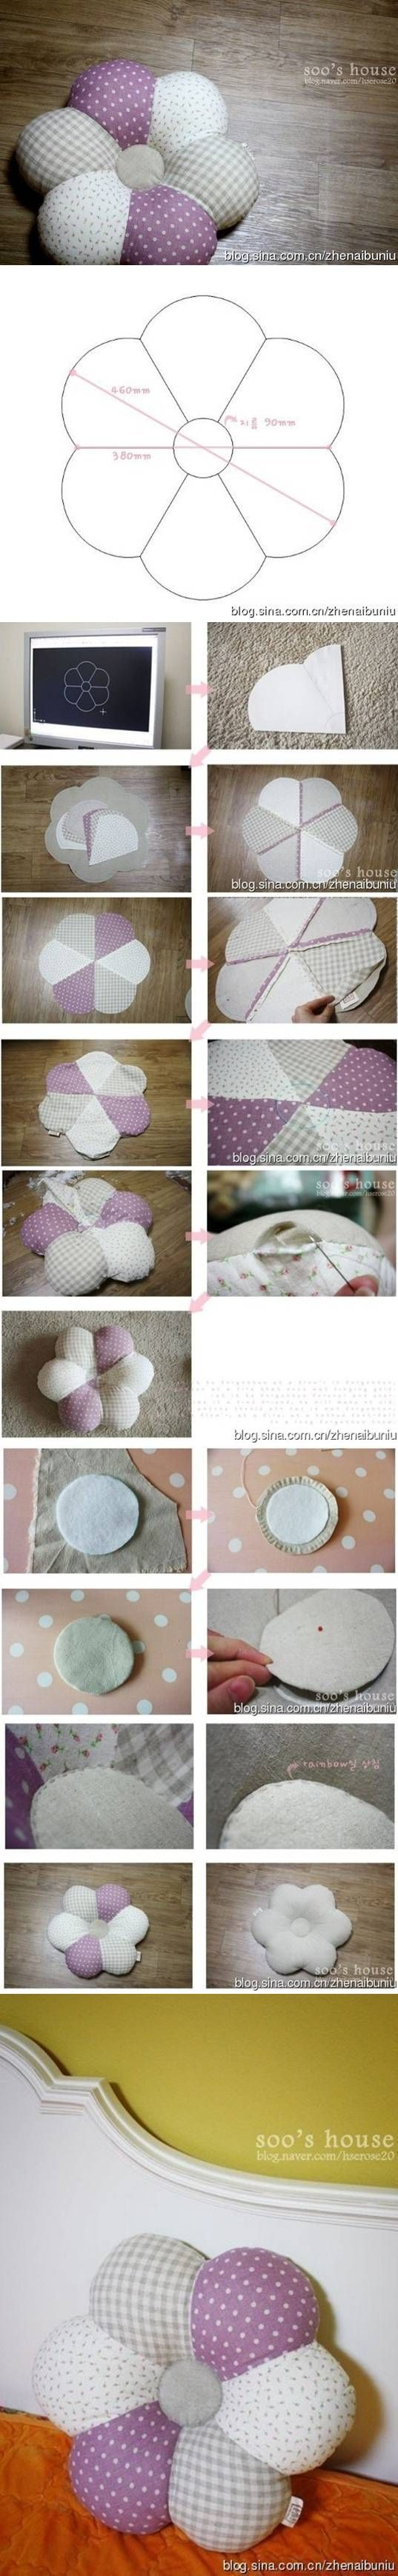 DIY Flower Style Pillow DIY Flower Style Pillow